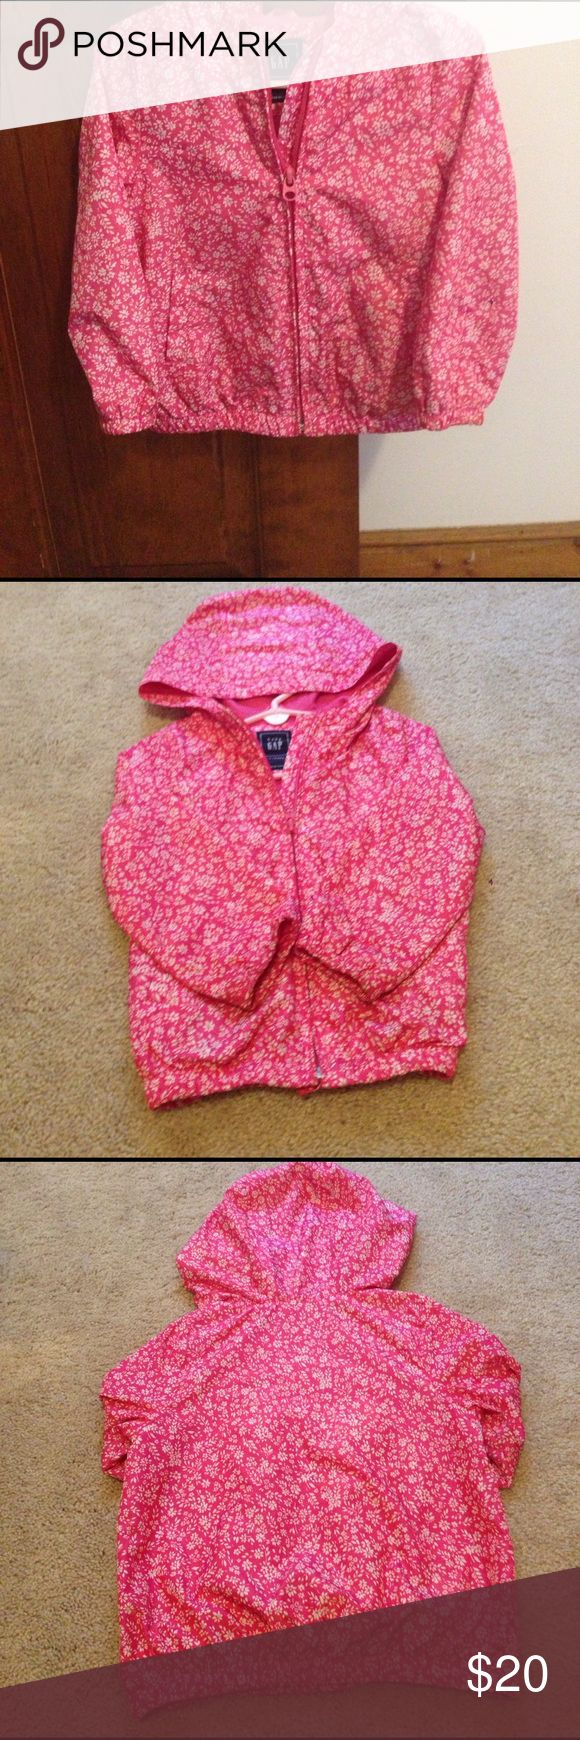 Gap Jacket Baby Gap Size 3 windbreaker. Pink with white flower print. Two side pockets with hood. No holes rips or stains. GAP Jackets & Coats